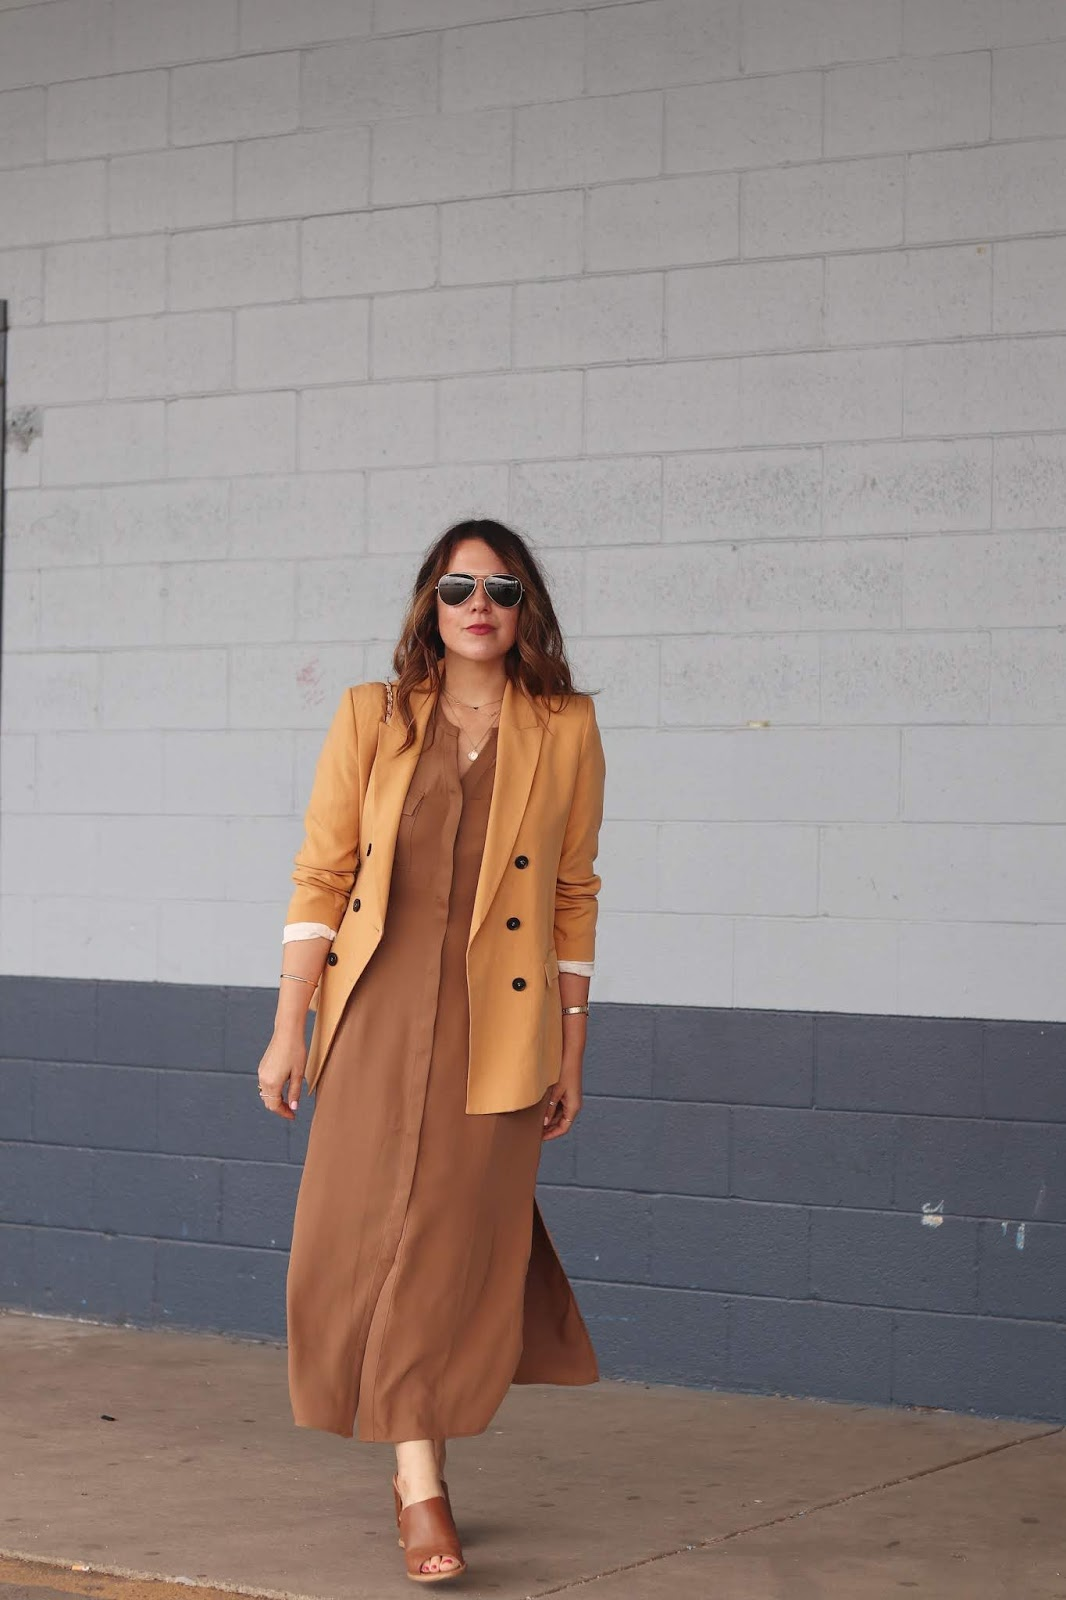 Le Chateau maxi dress and blazer outfit aleesha harris